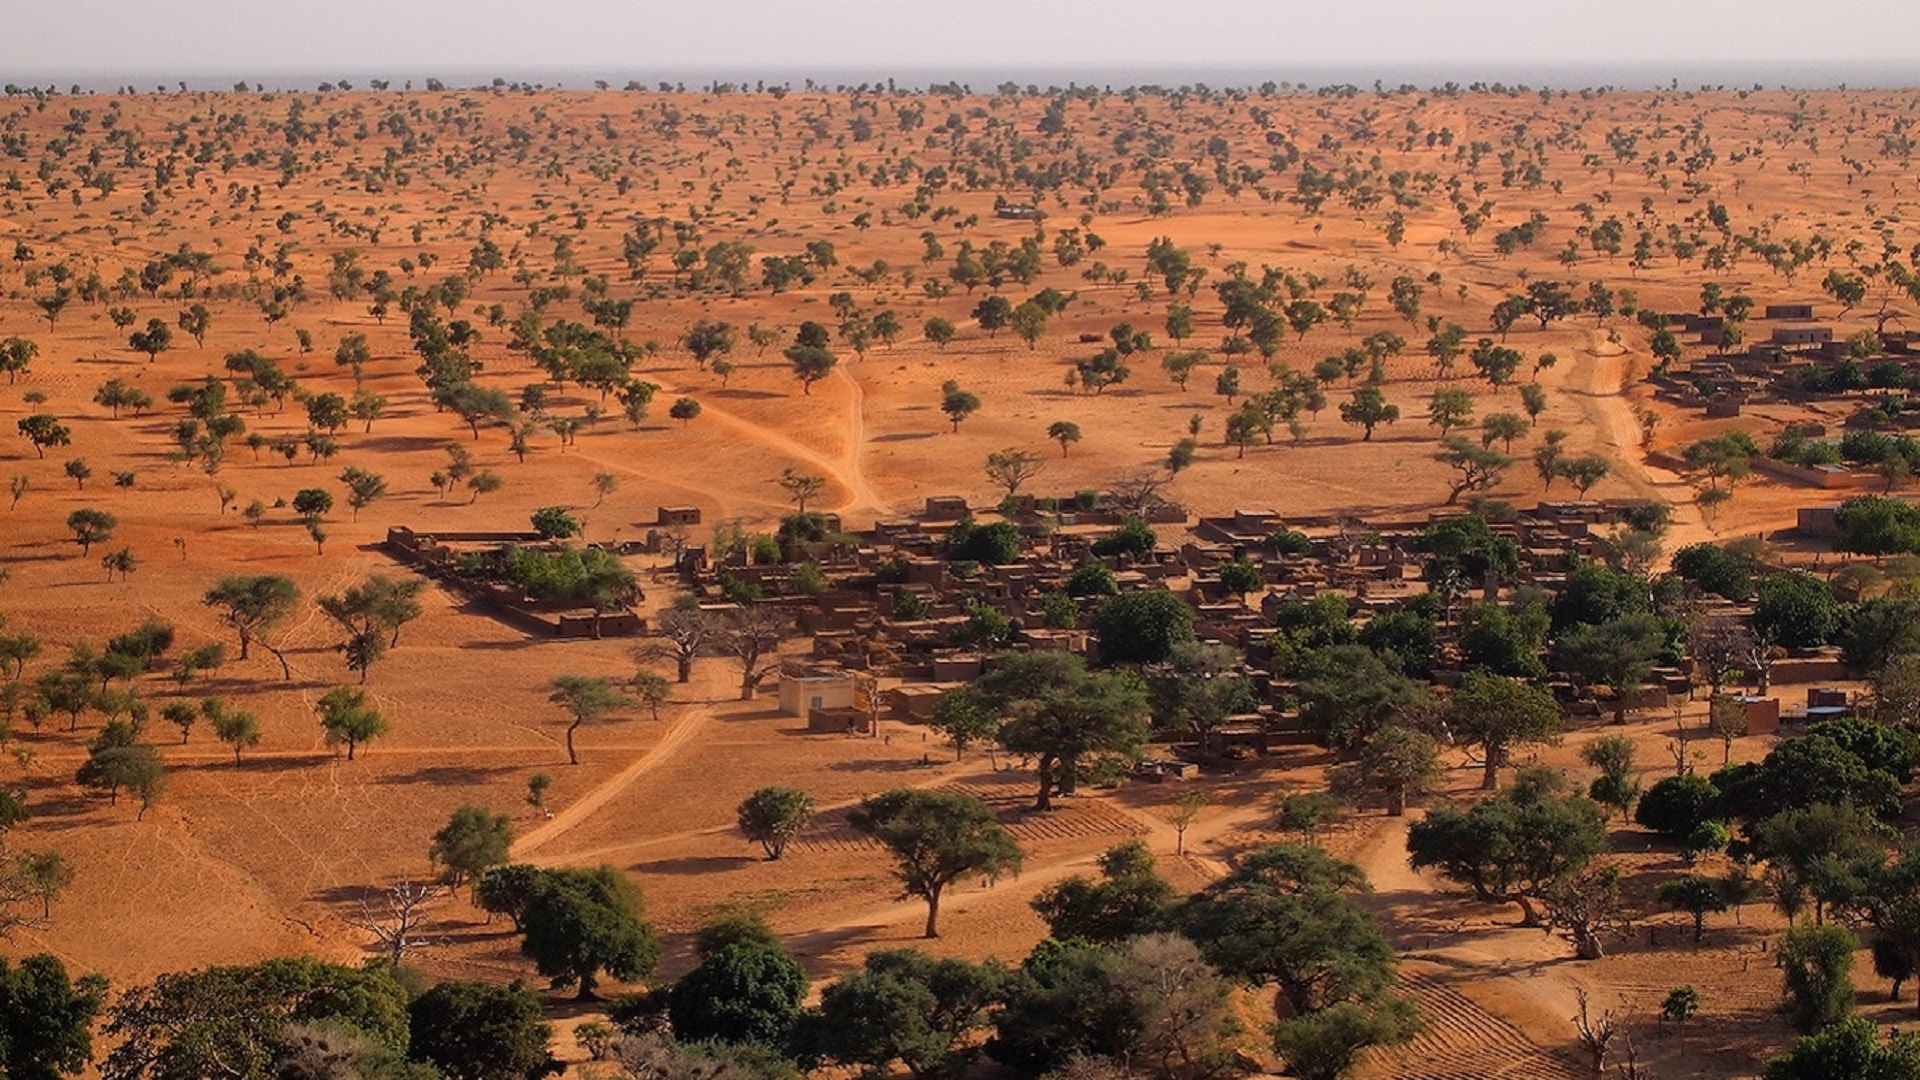 Trees across surrounding a village in a red desert in Mali, Africa